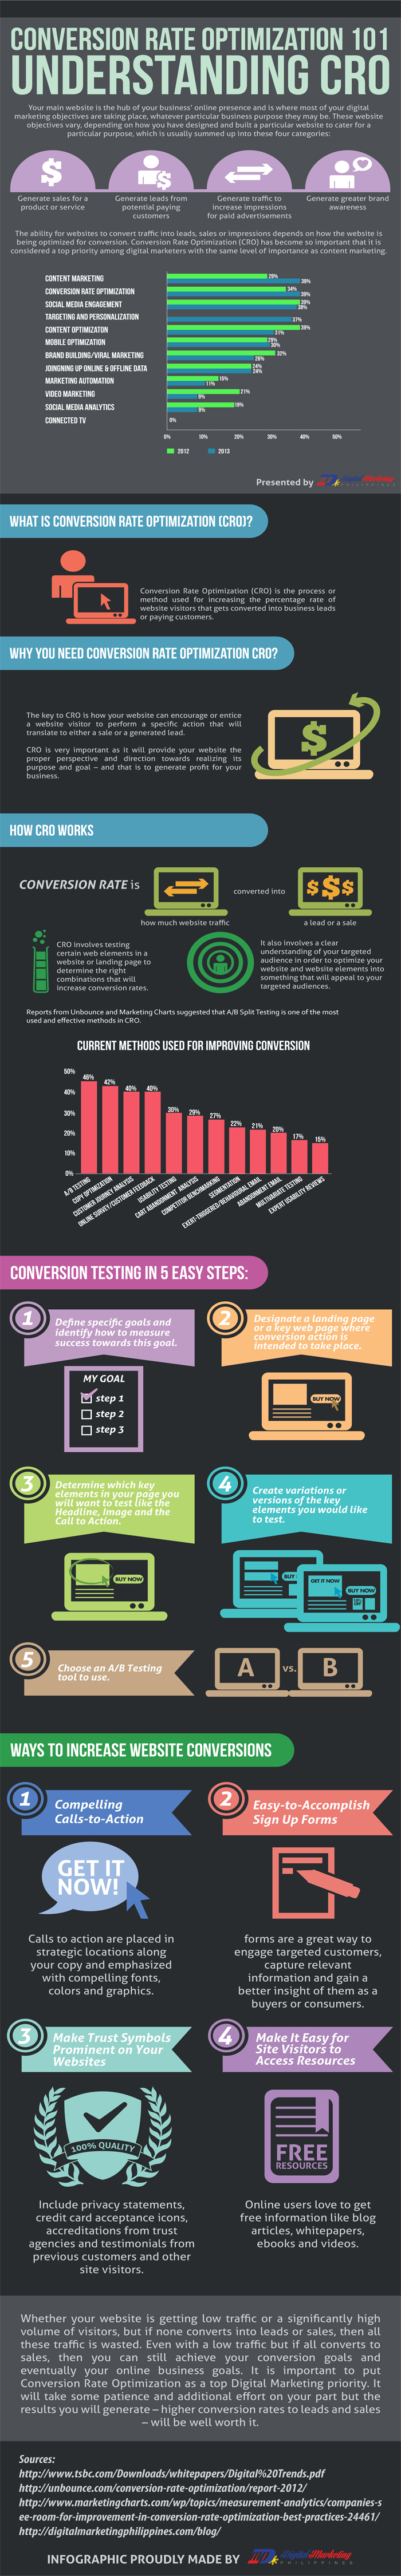 Conversion-Rate-Optimization-101-Understanding-CRO